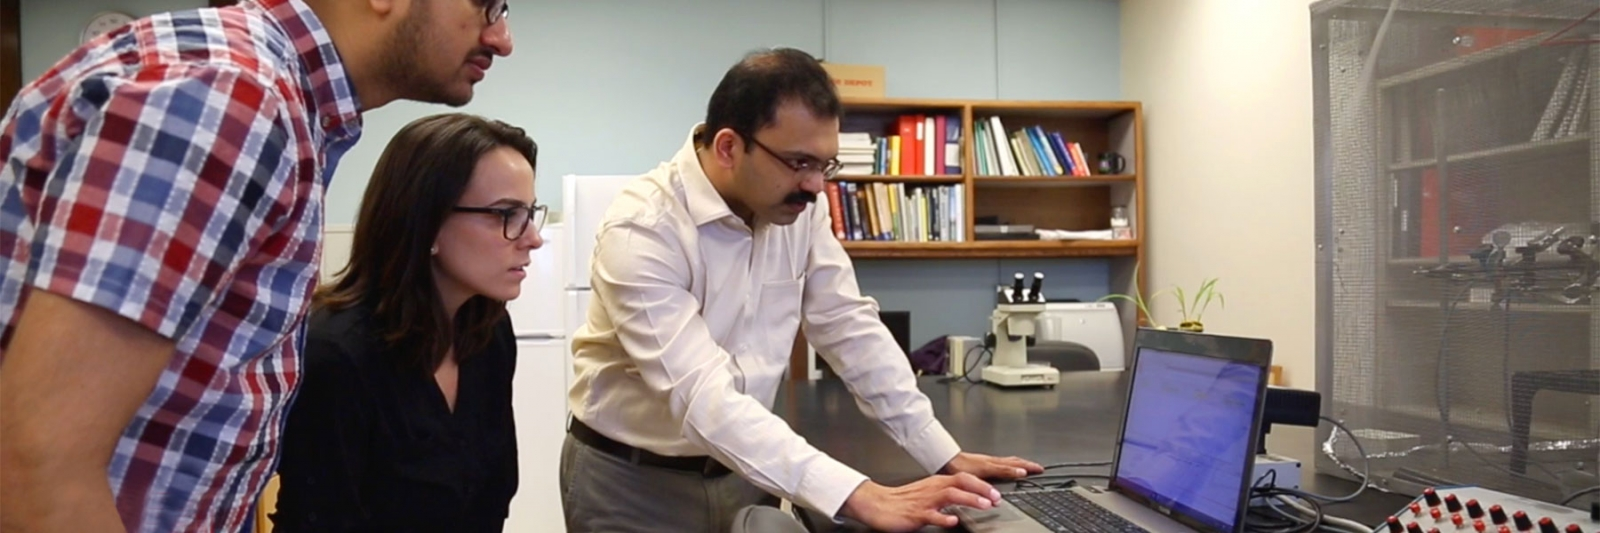 Dr. Joe M. Louis working with student in lab